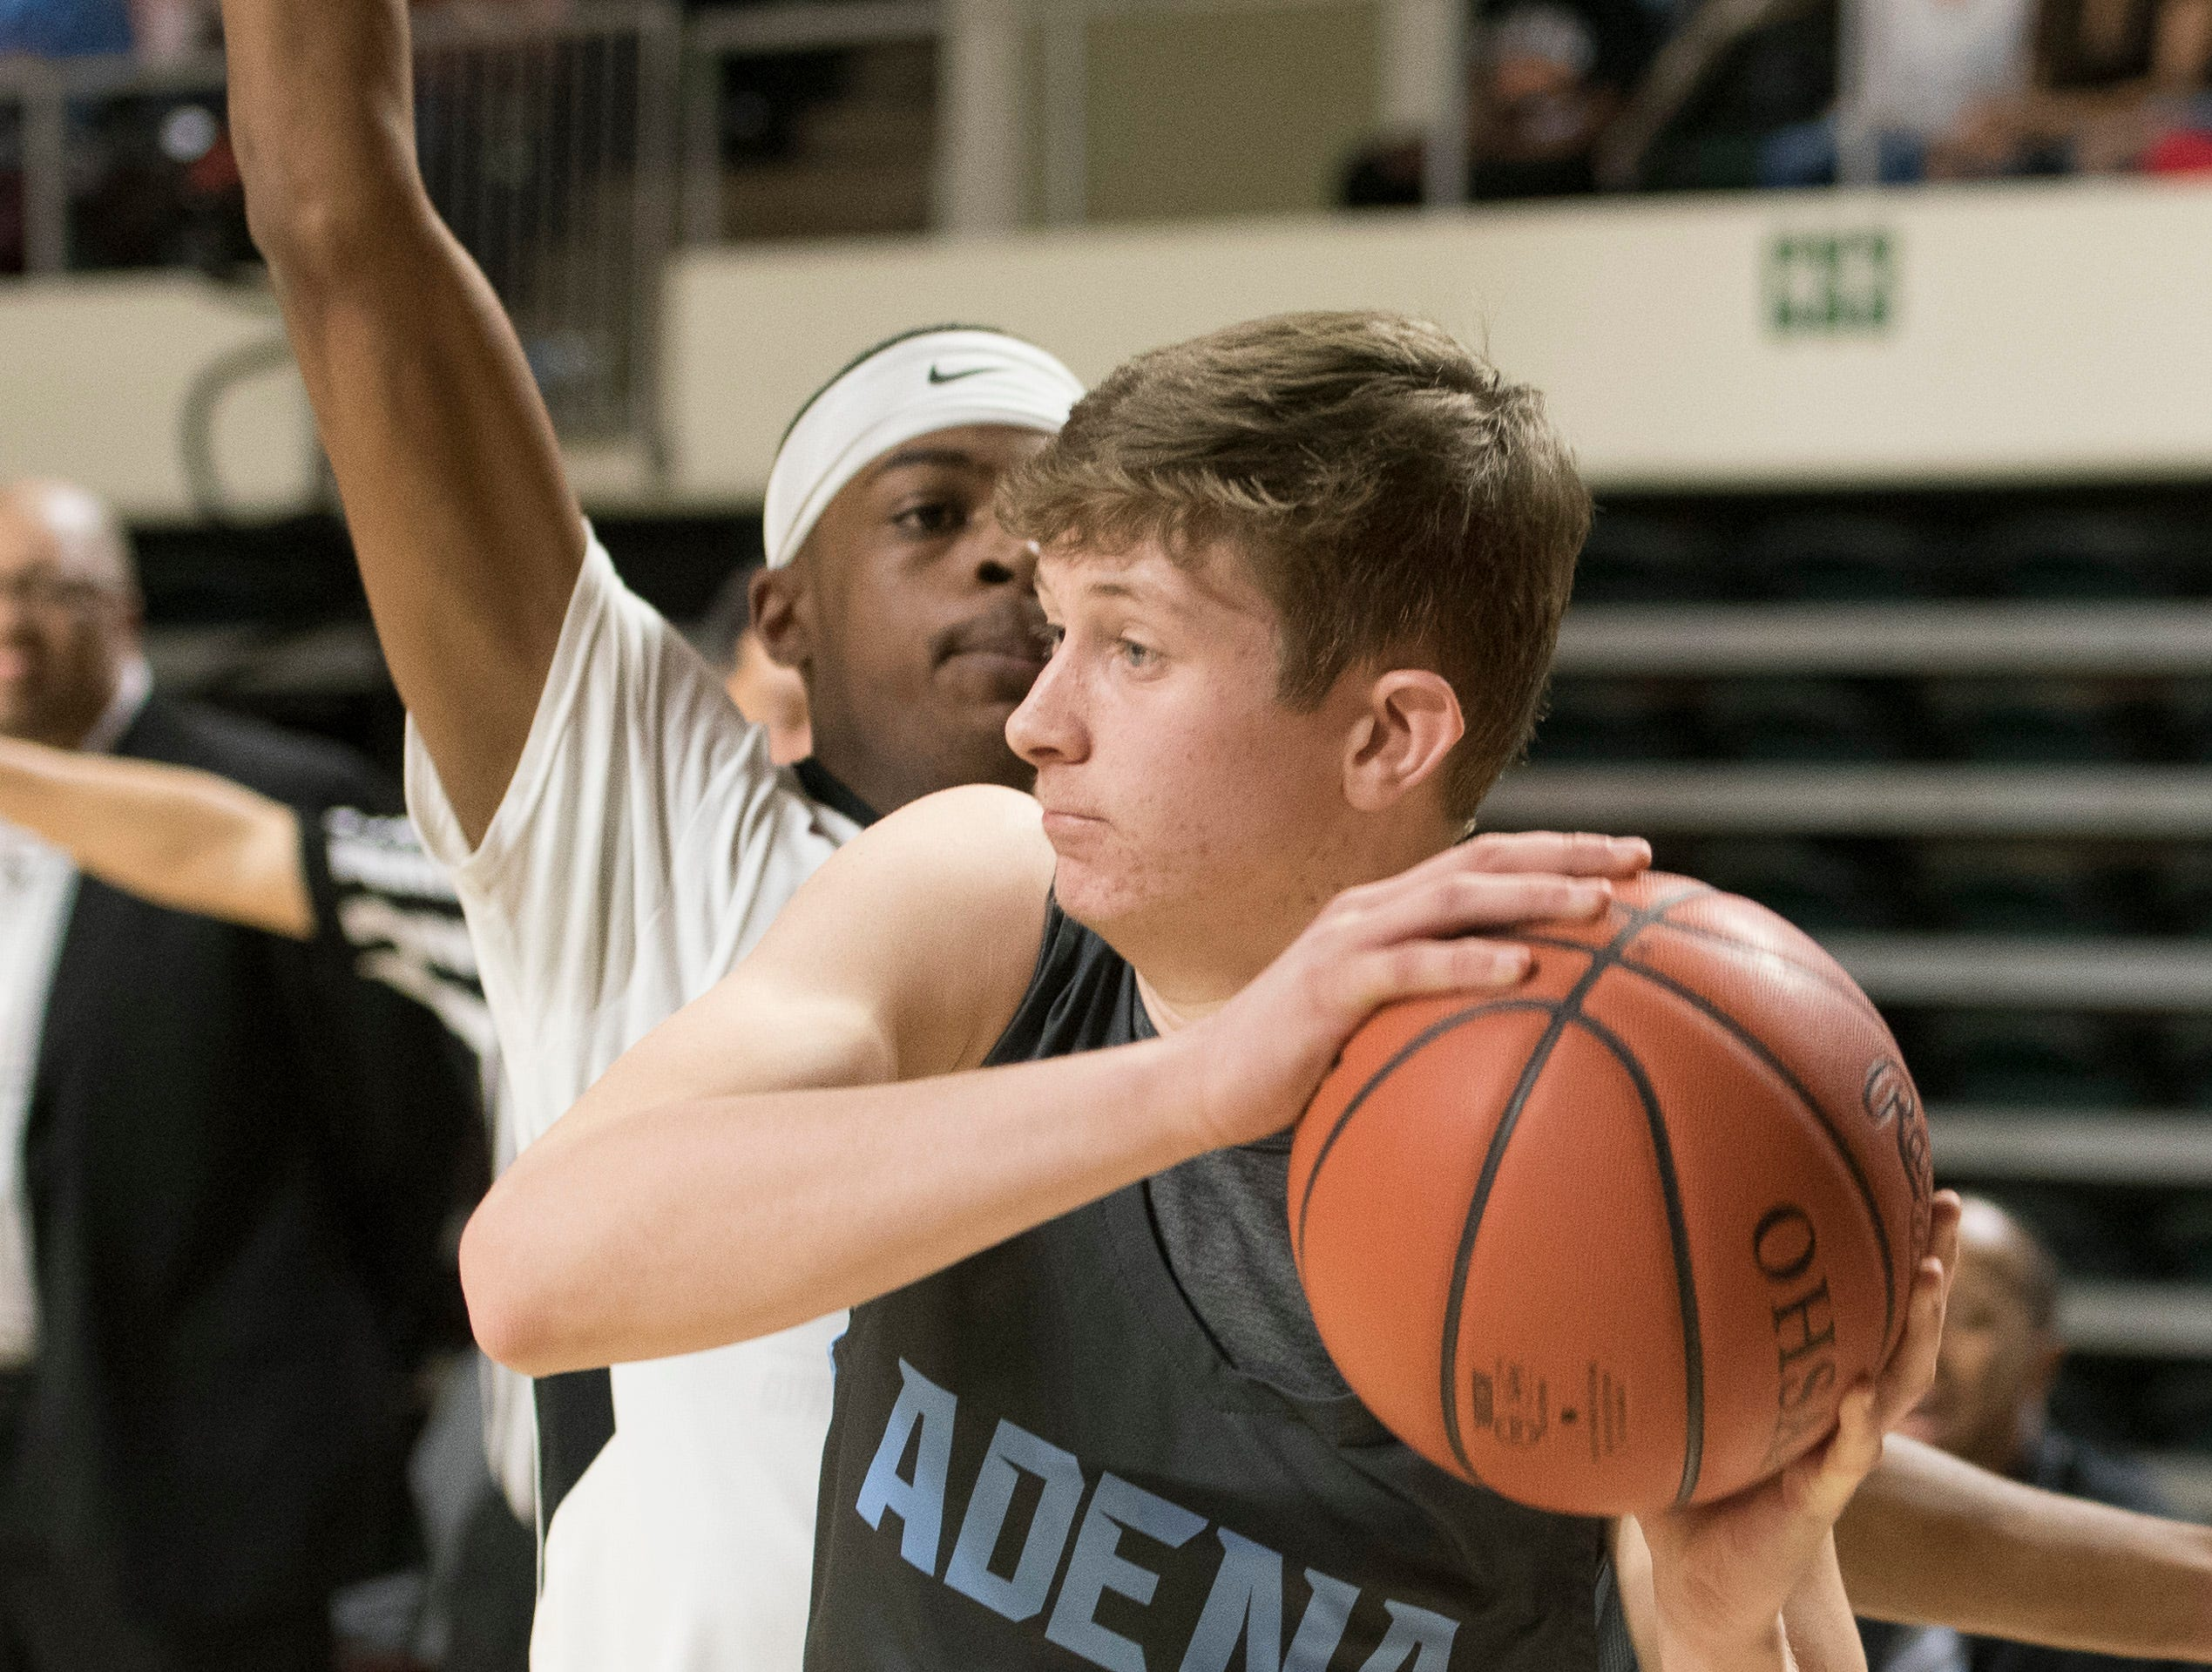 Harvest Prep defeated the Adena  79-38 Thursday night in a Division III regional semifinal game at Ohio University's Convocation Center on March 14, 2019.